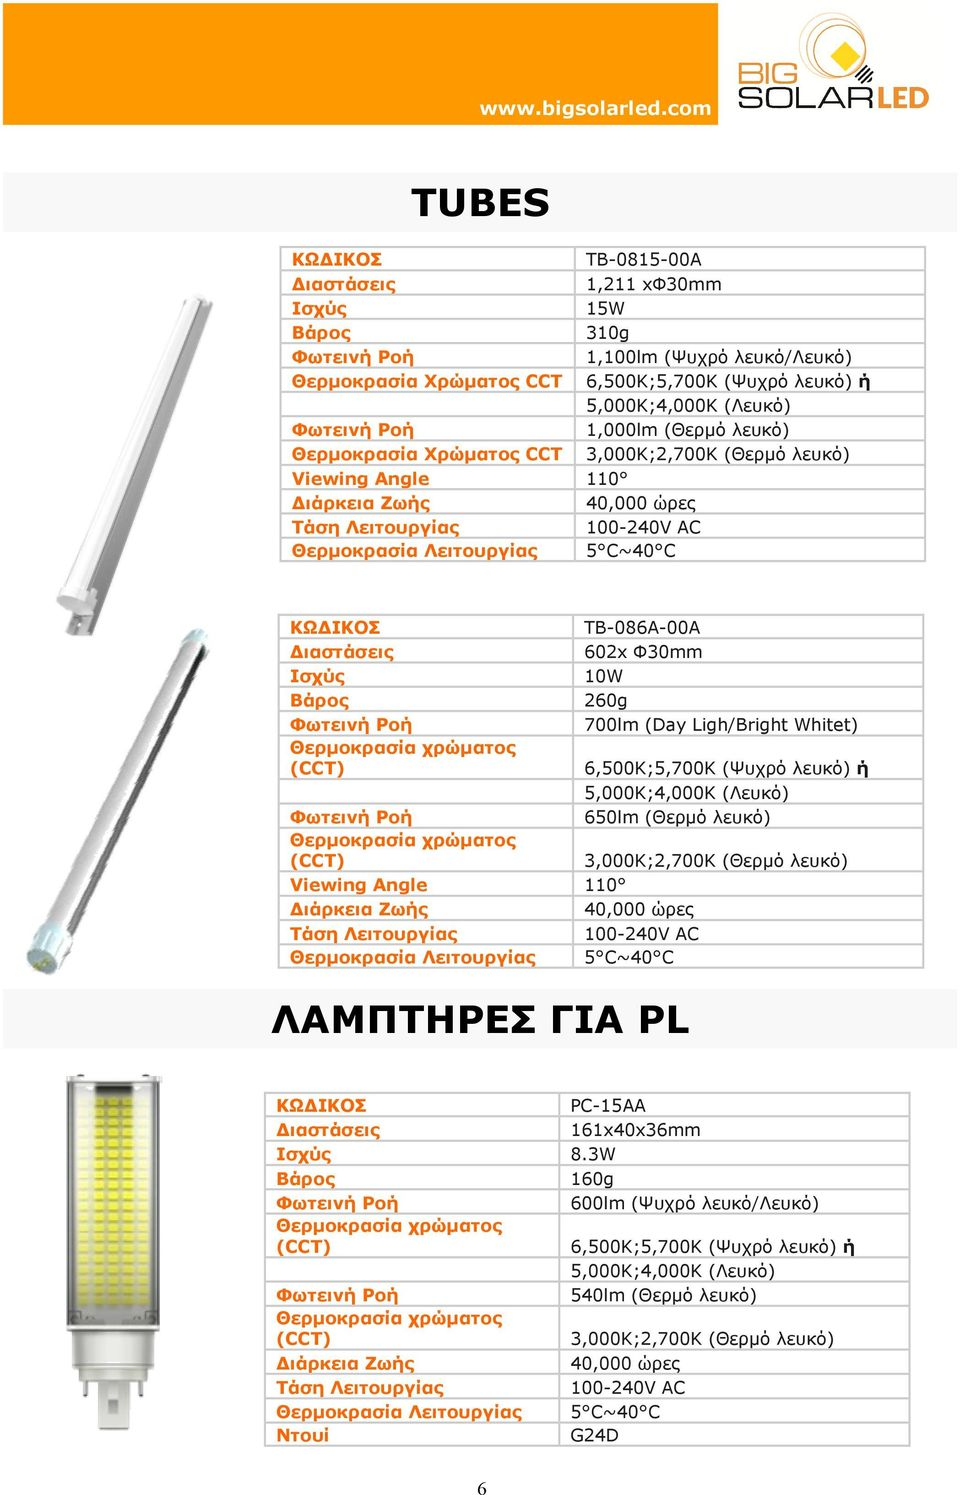 ΓΙΑ PL TB-086A-00A 602x Φ30mm 10W 260g 700lm (Day Ligh/Bright Whitet) 650lm (Θερµό λευκό) PC-15AA 161x40x36mm 8.